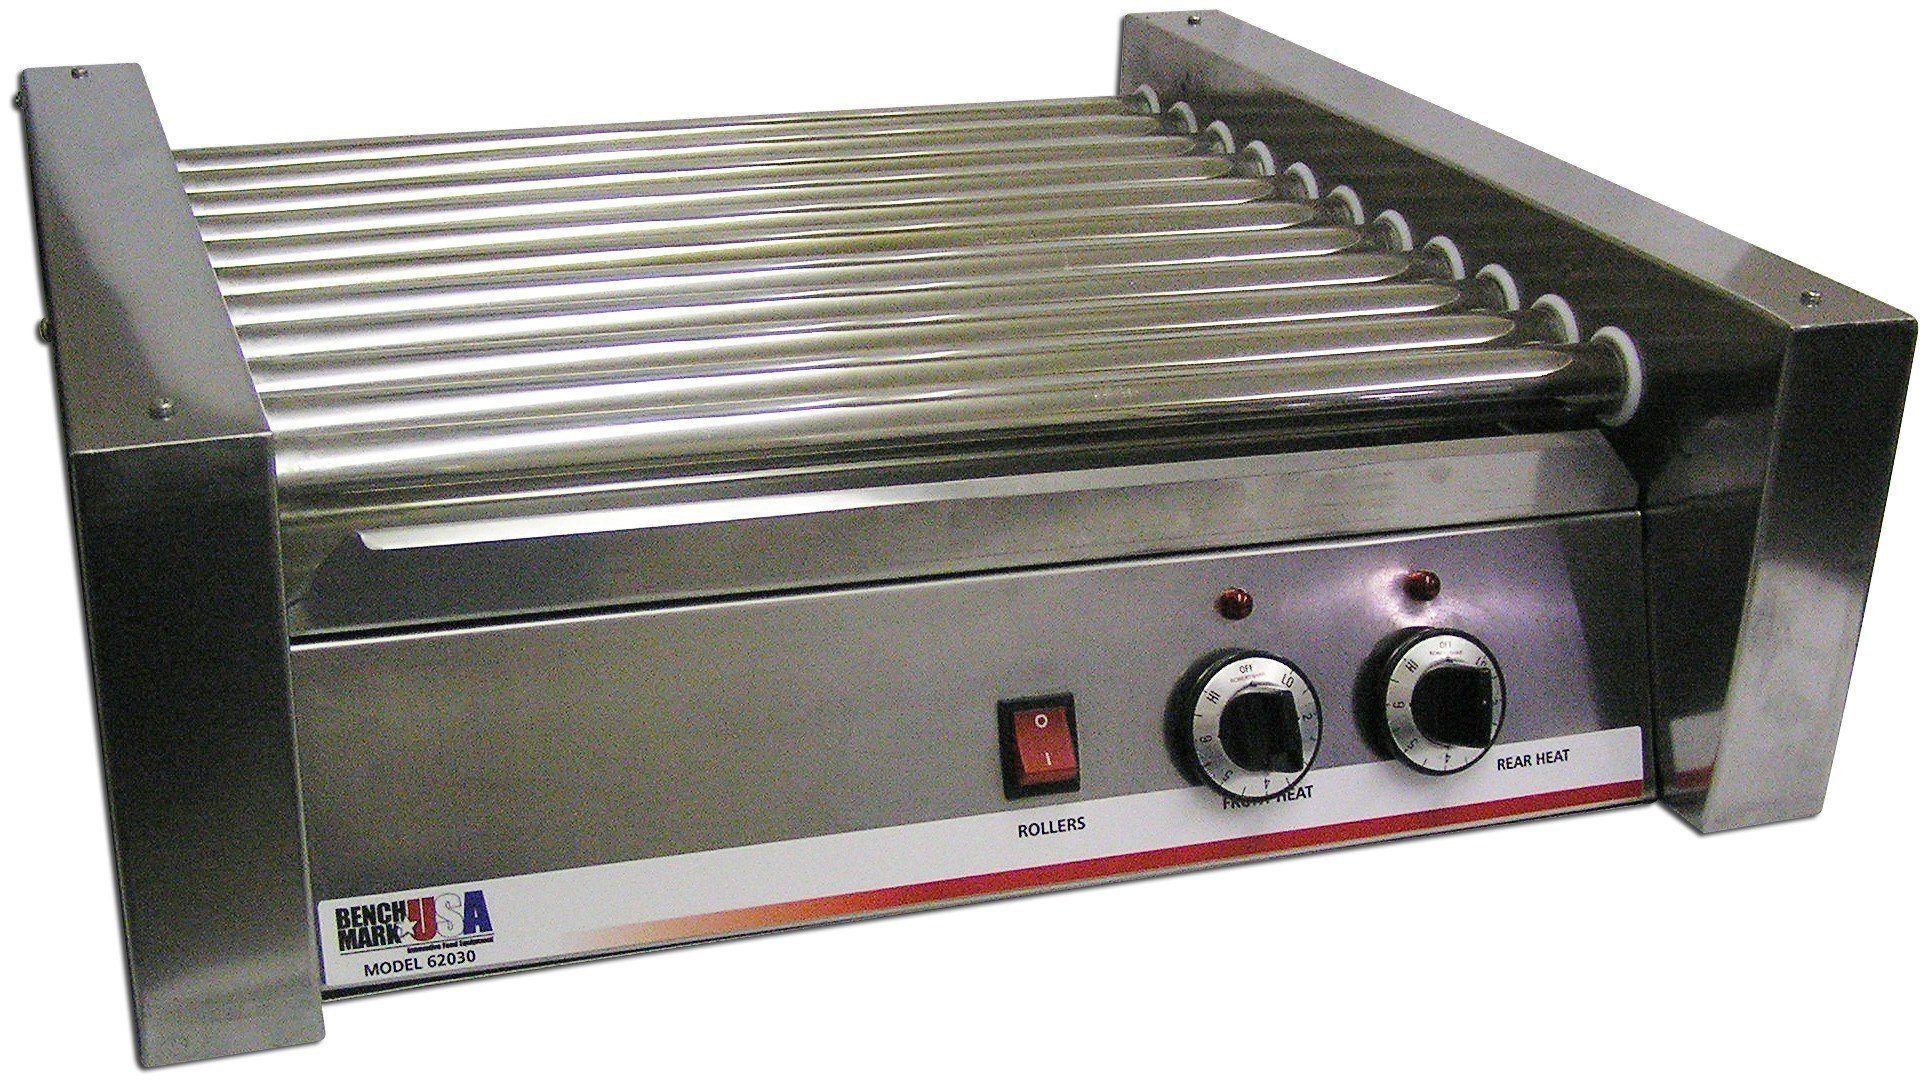 commercial kitchen hot box space saver design benchmark usa 62030 30 dog roller grill 1100w